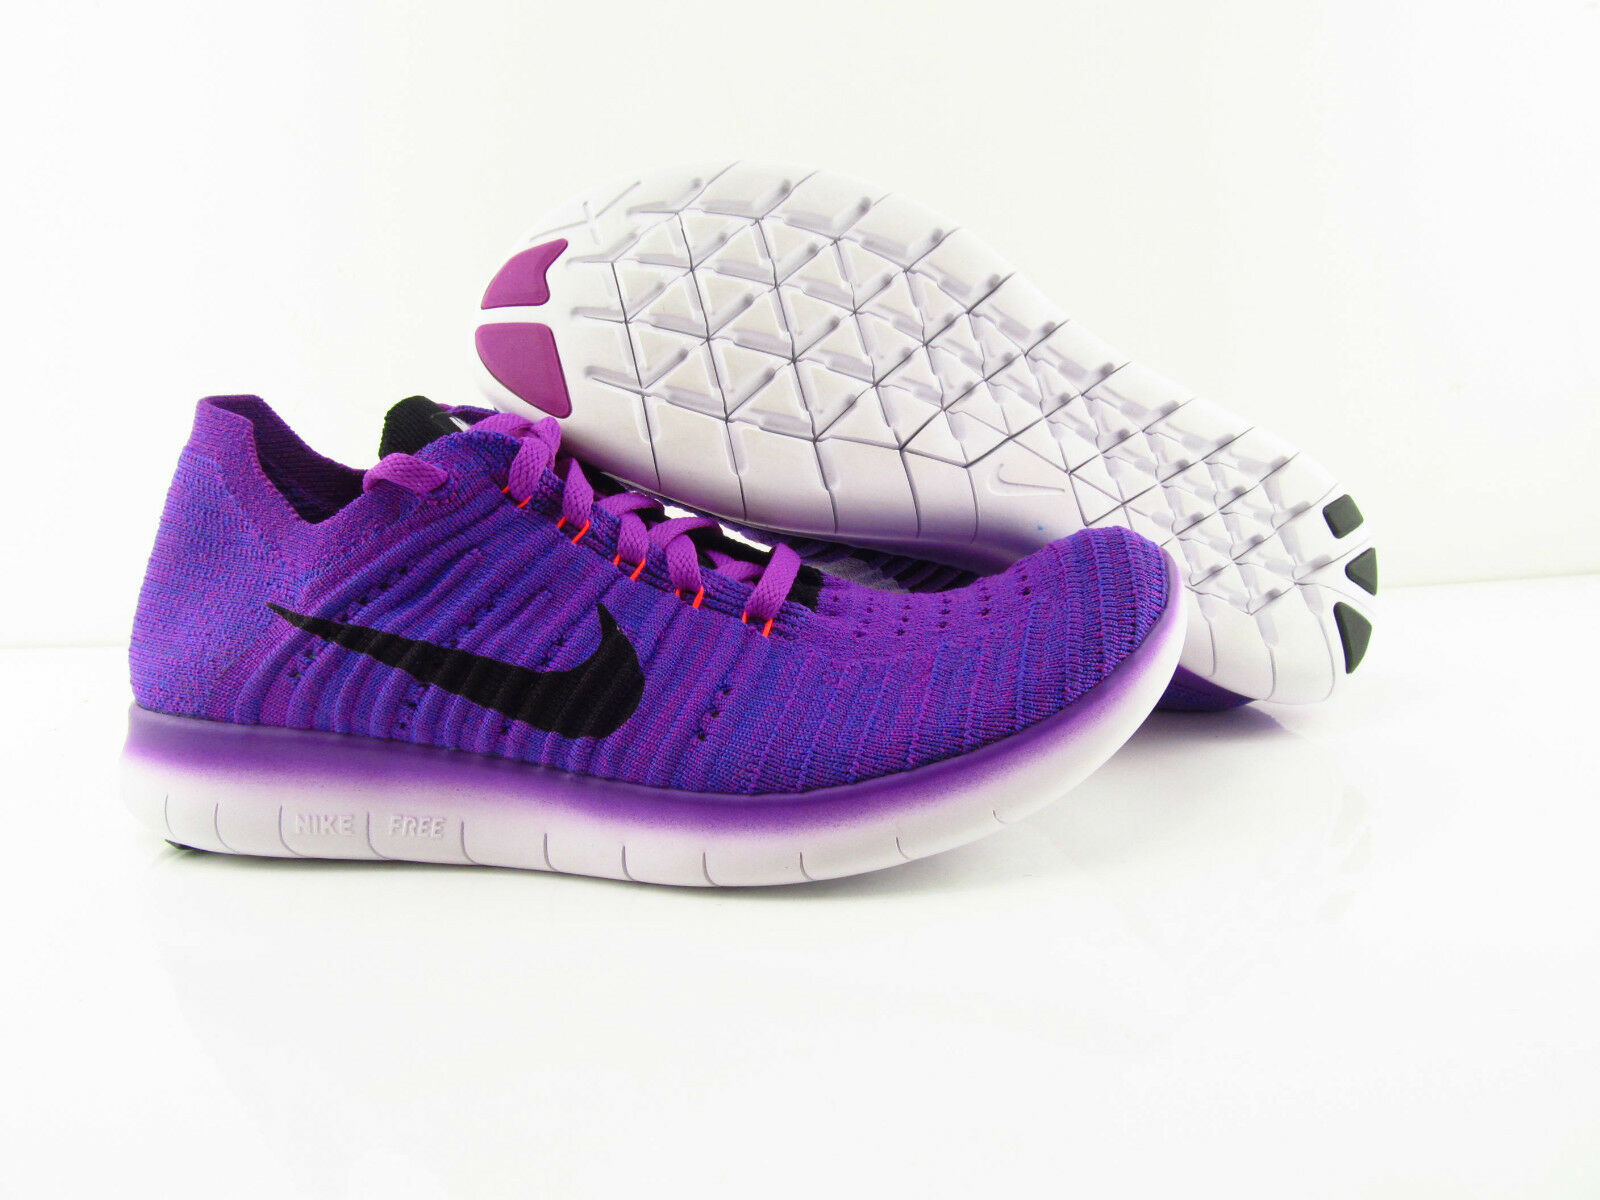 Nike Wmns Free New RN Flyknit Vivid Purple Running New Free US_7.5 UK_5 Eur 38.5 580eda